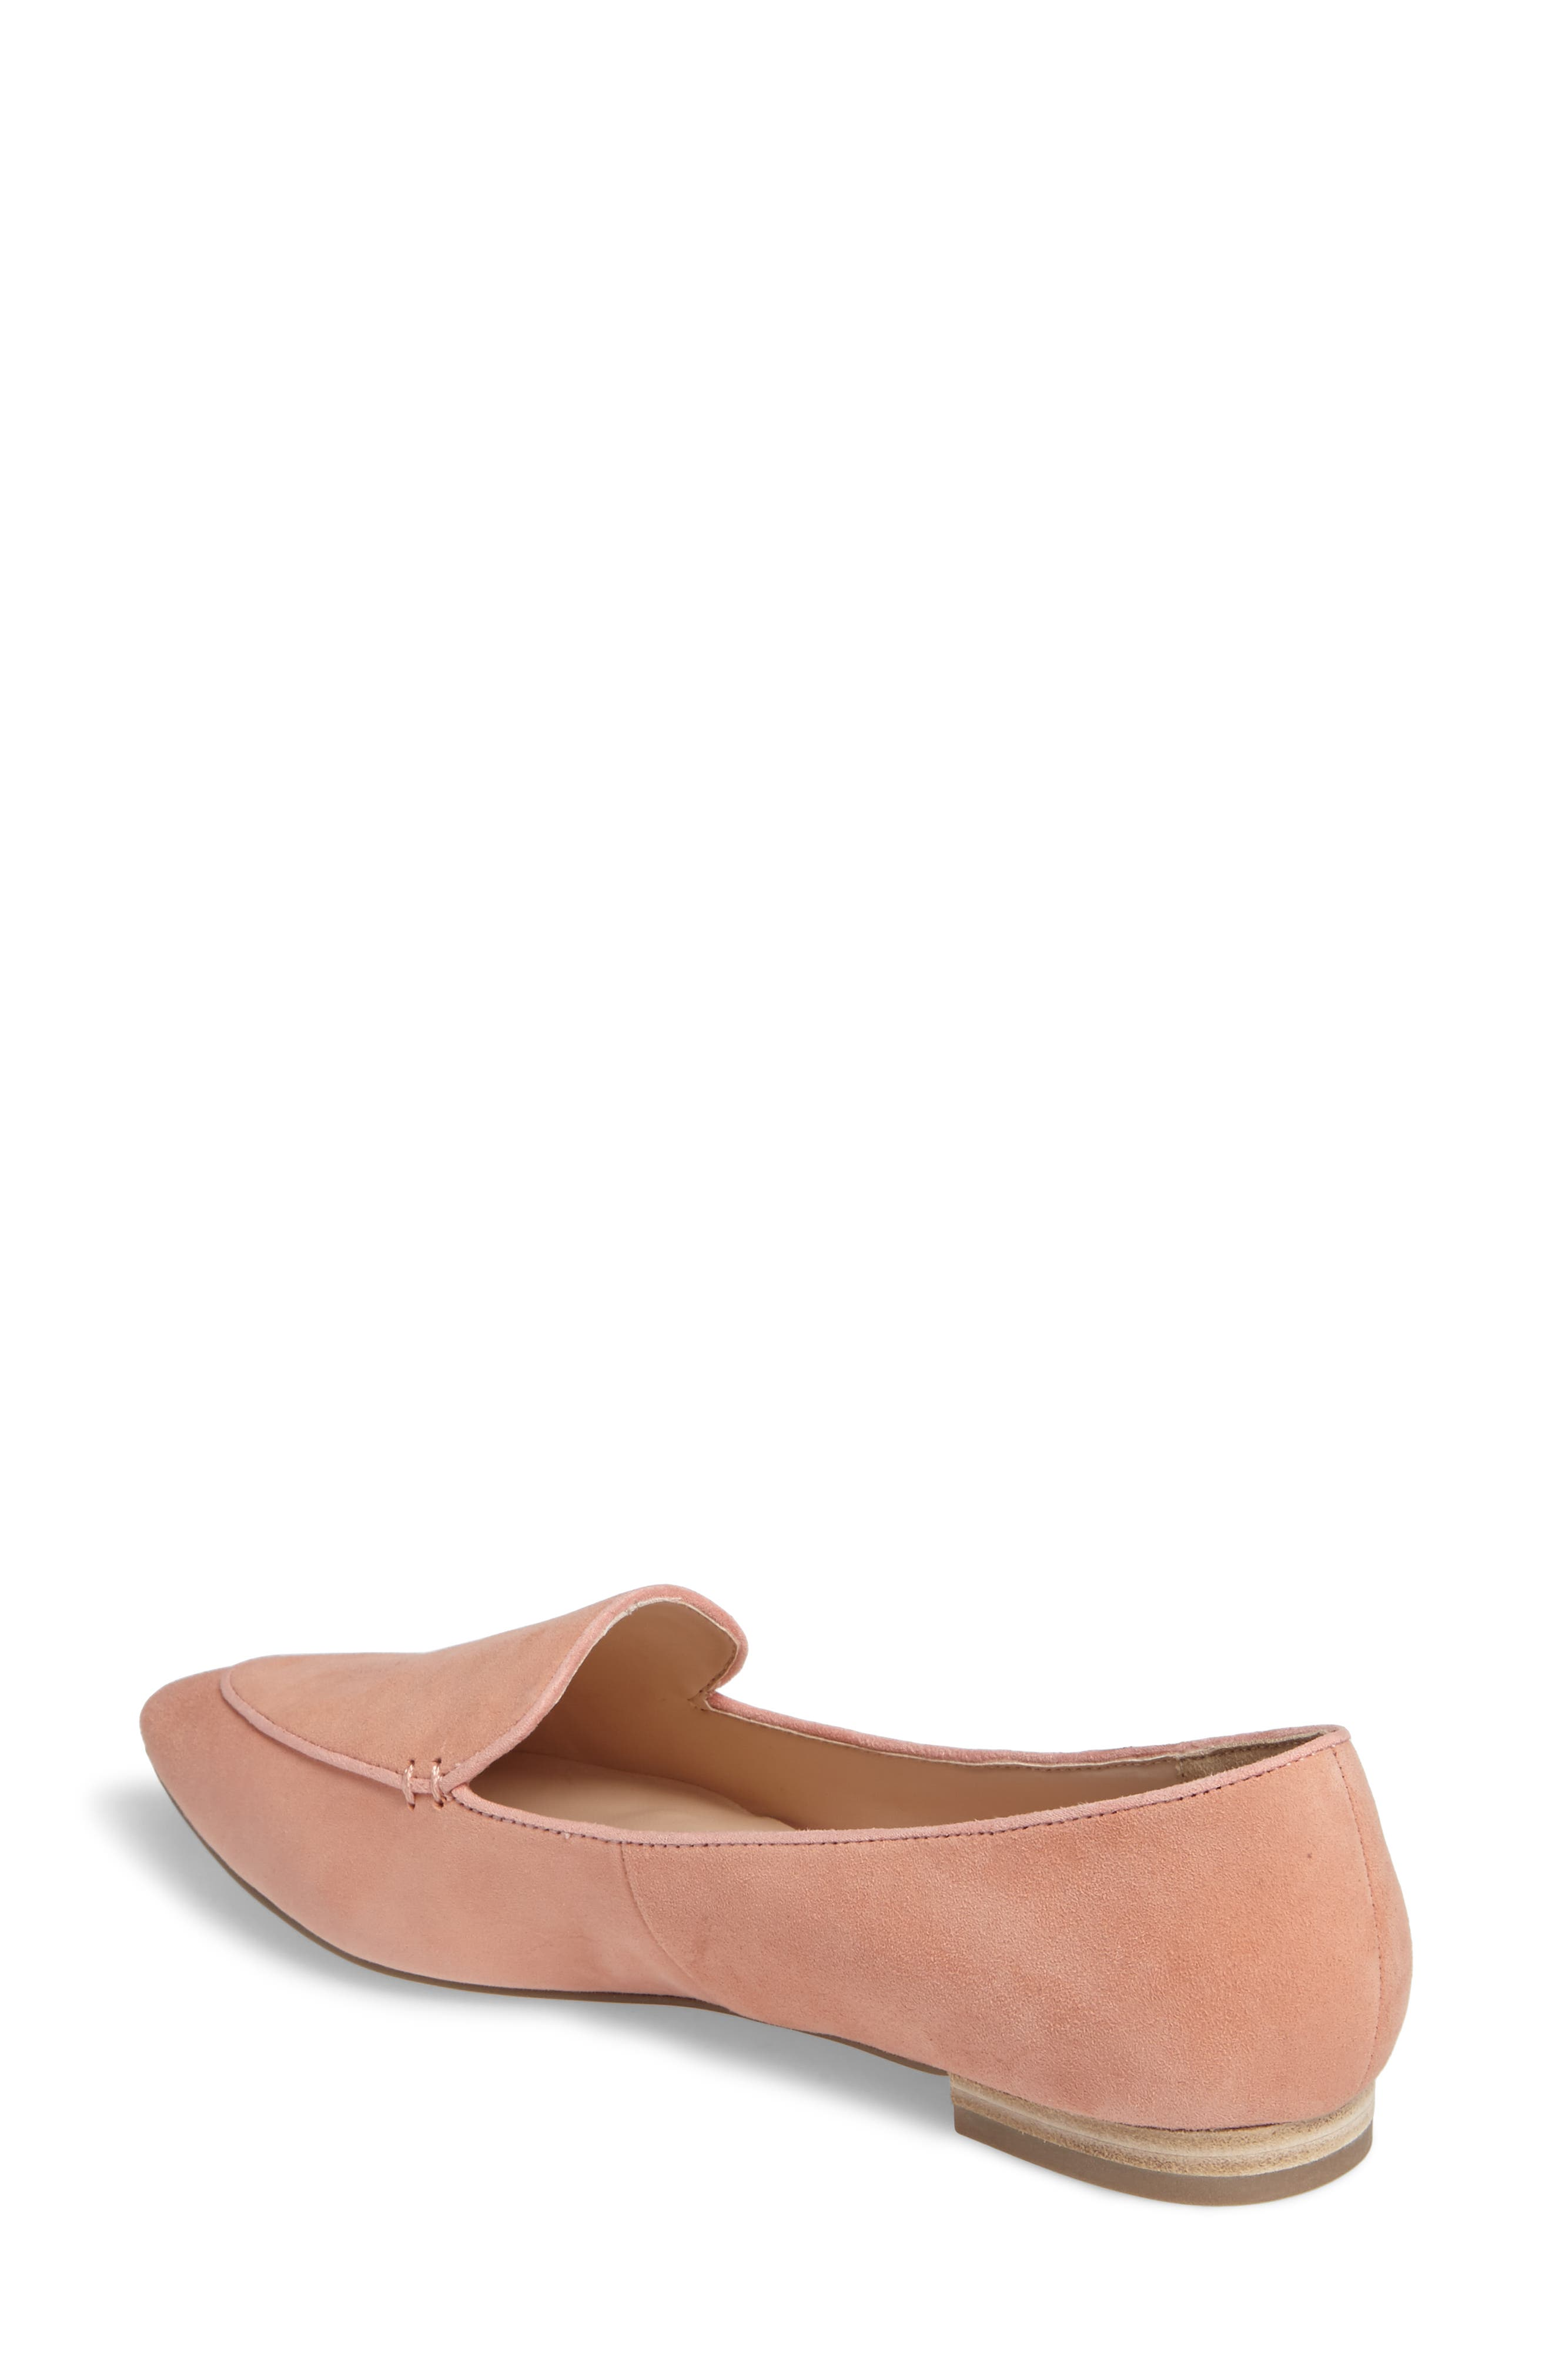 'Cammila' Pointy Toe Loafer,                             Alternate thumbnail 22, color,